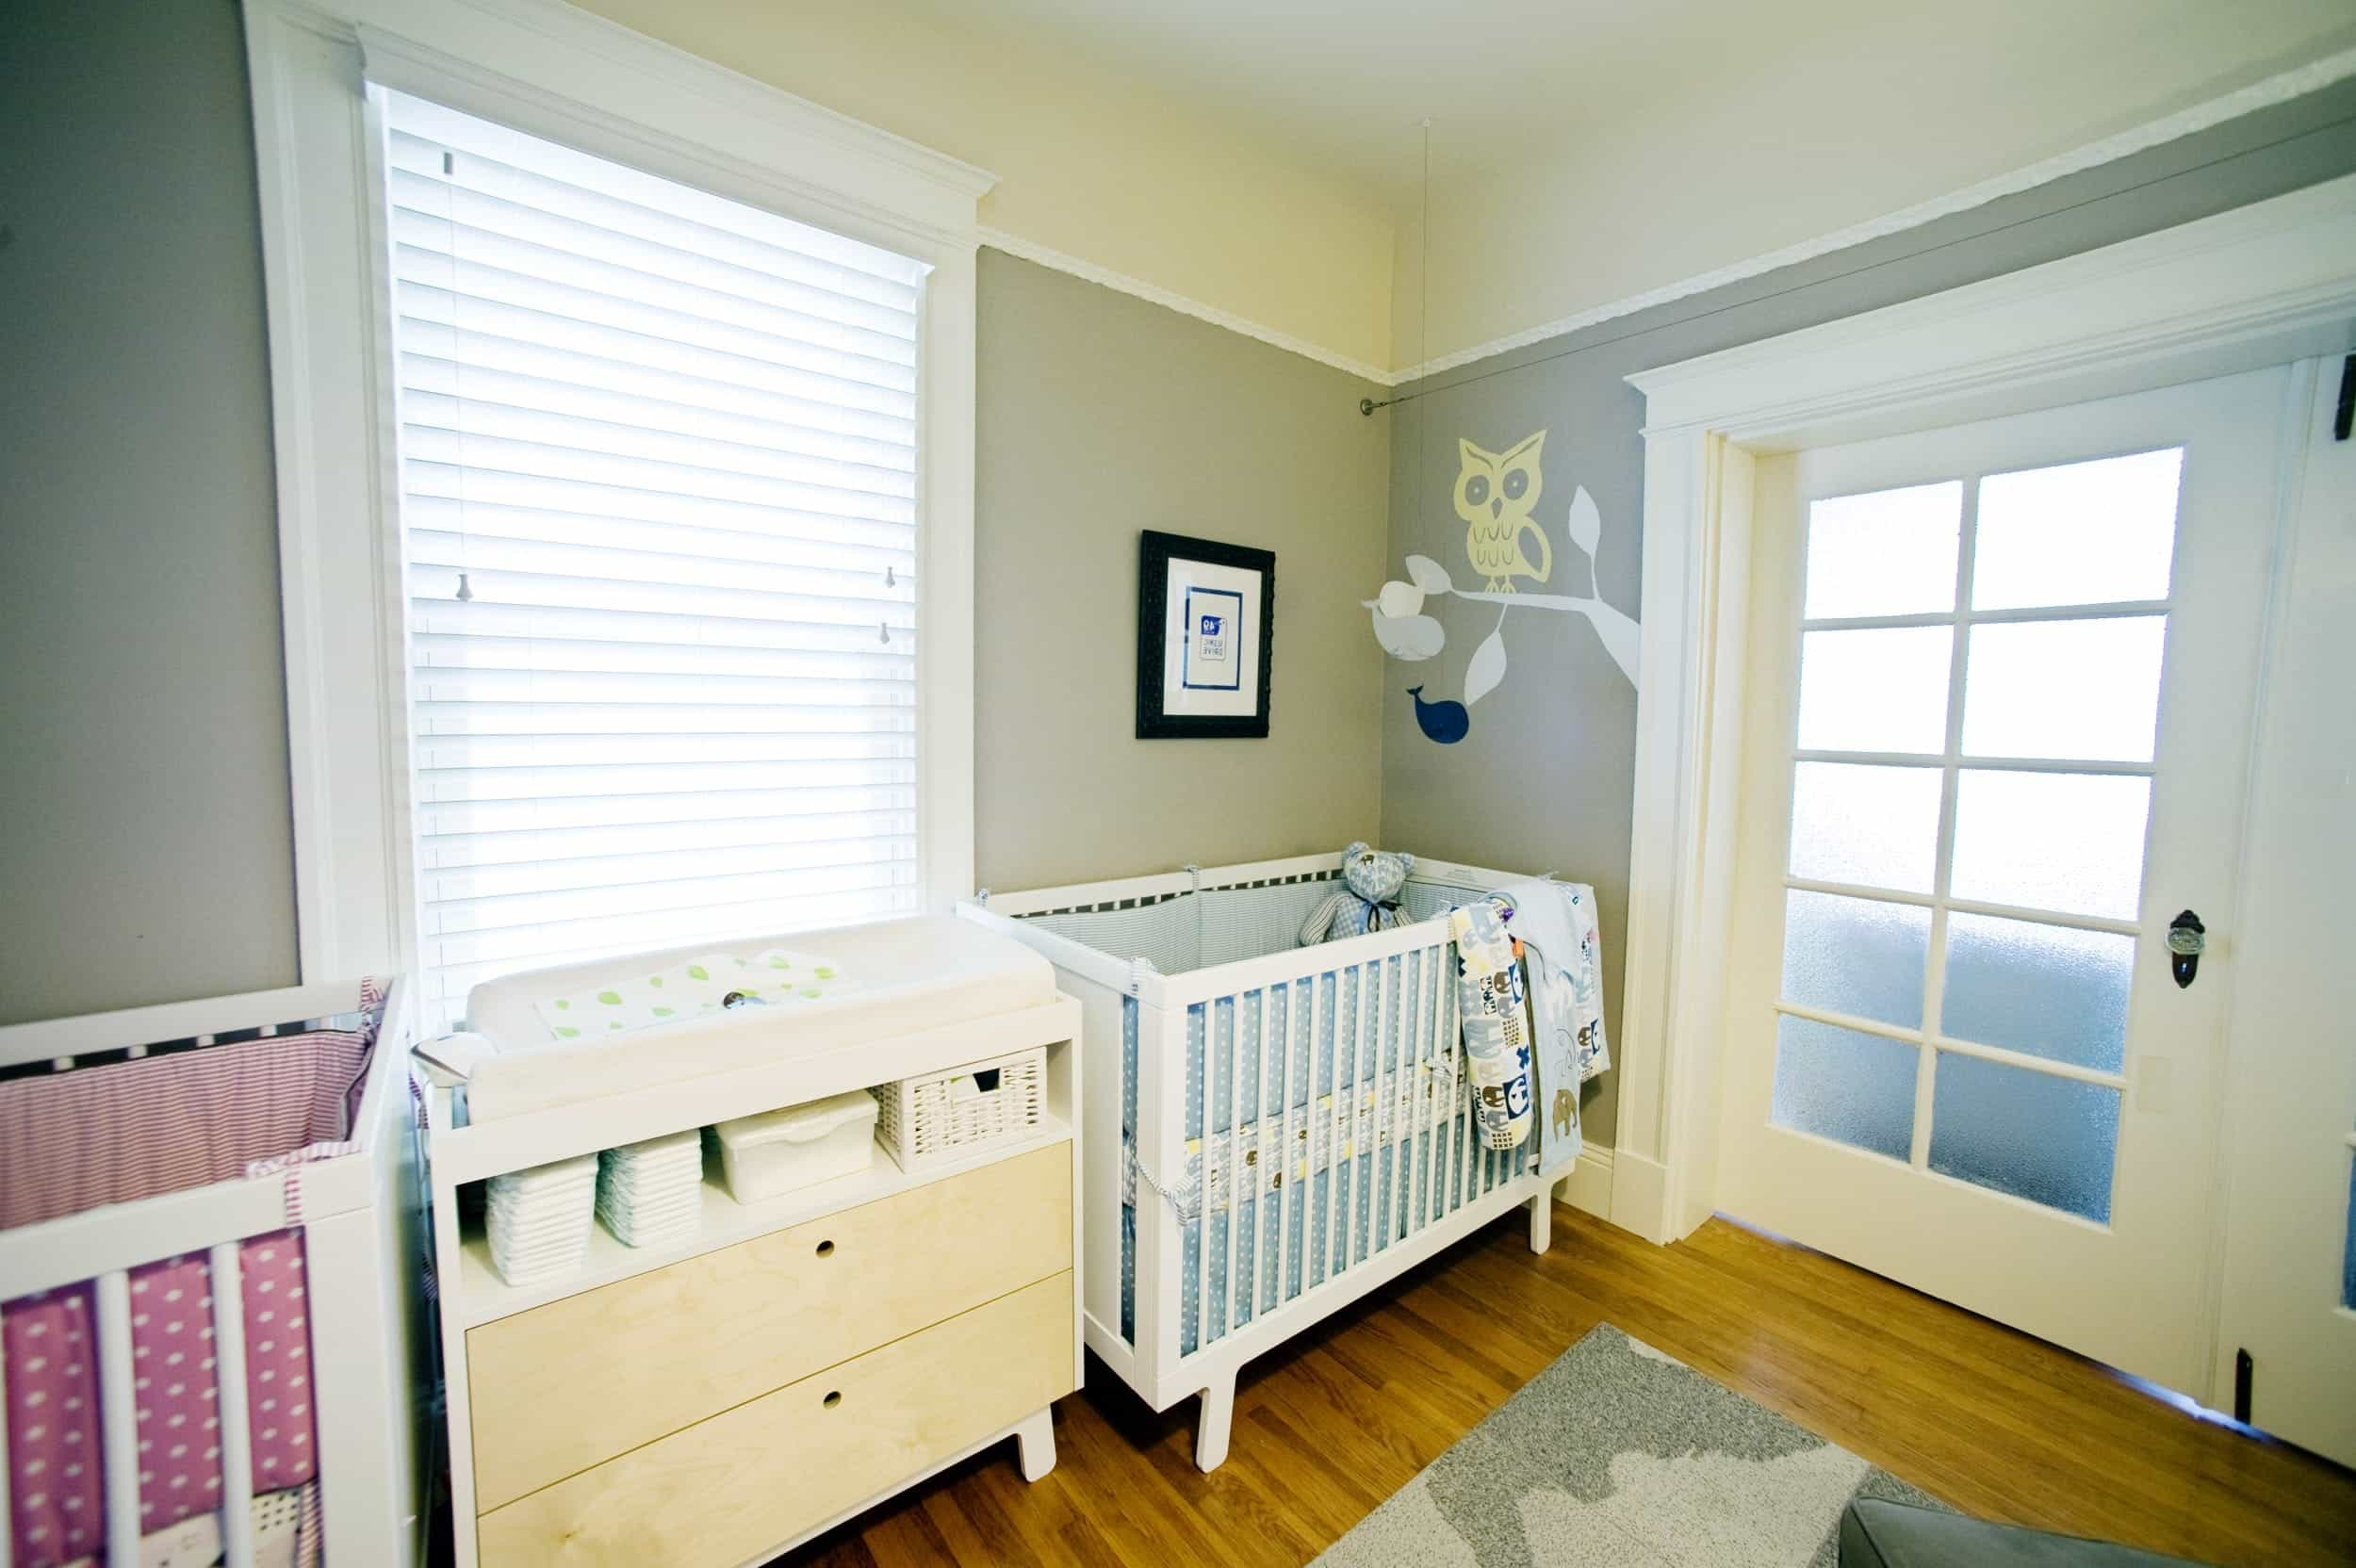 Modern Nursery For Twins With Adorable Owl Artwork (Image 17 of 33)